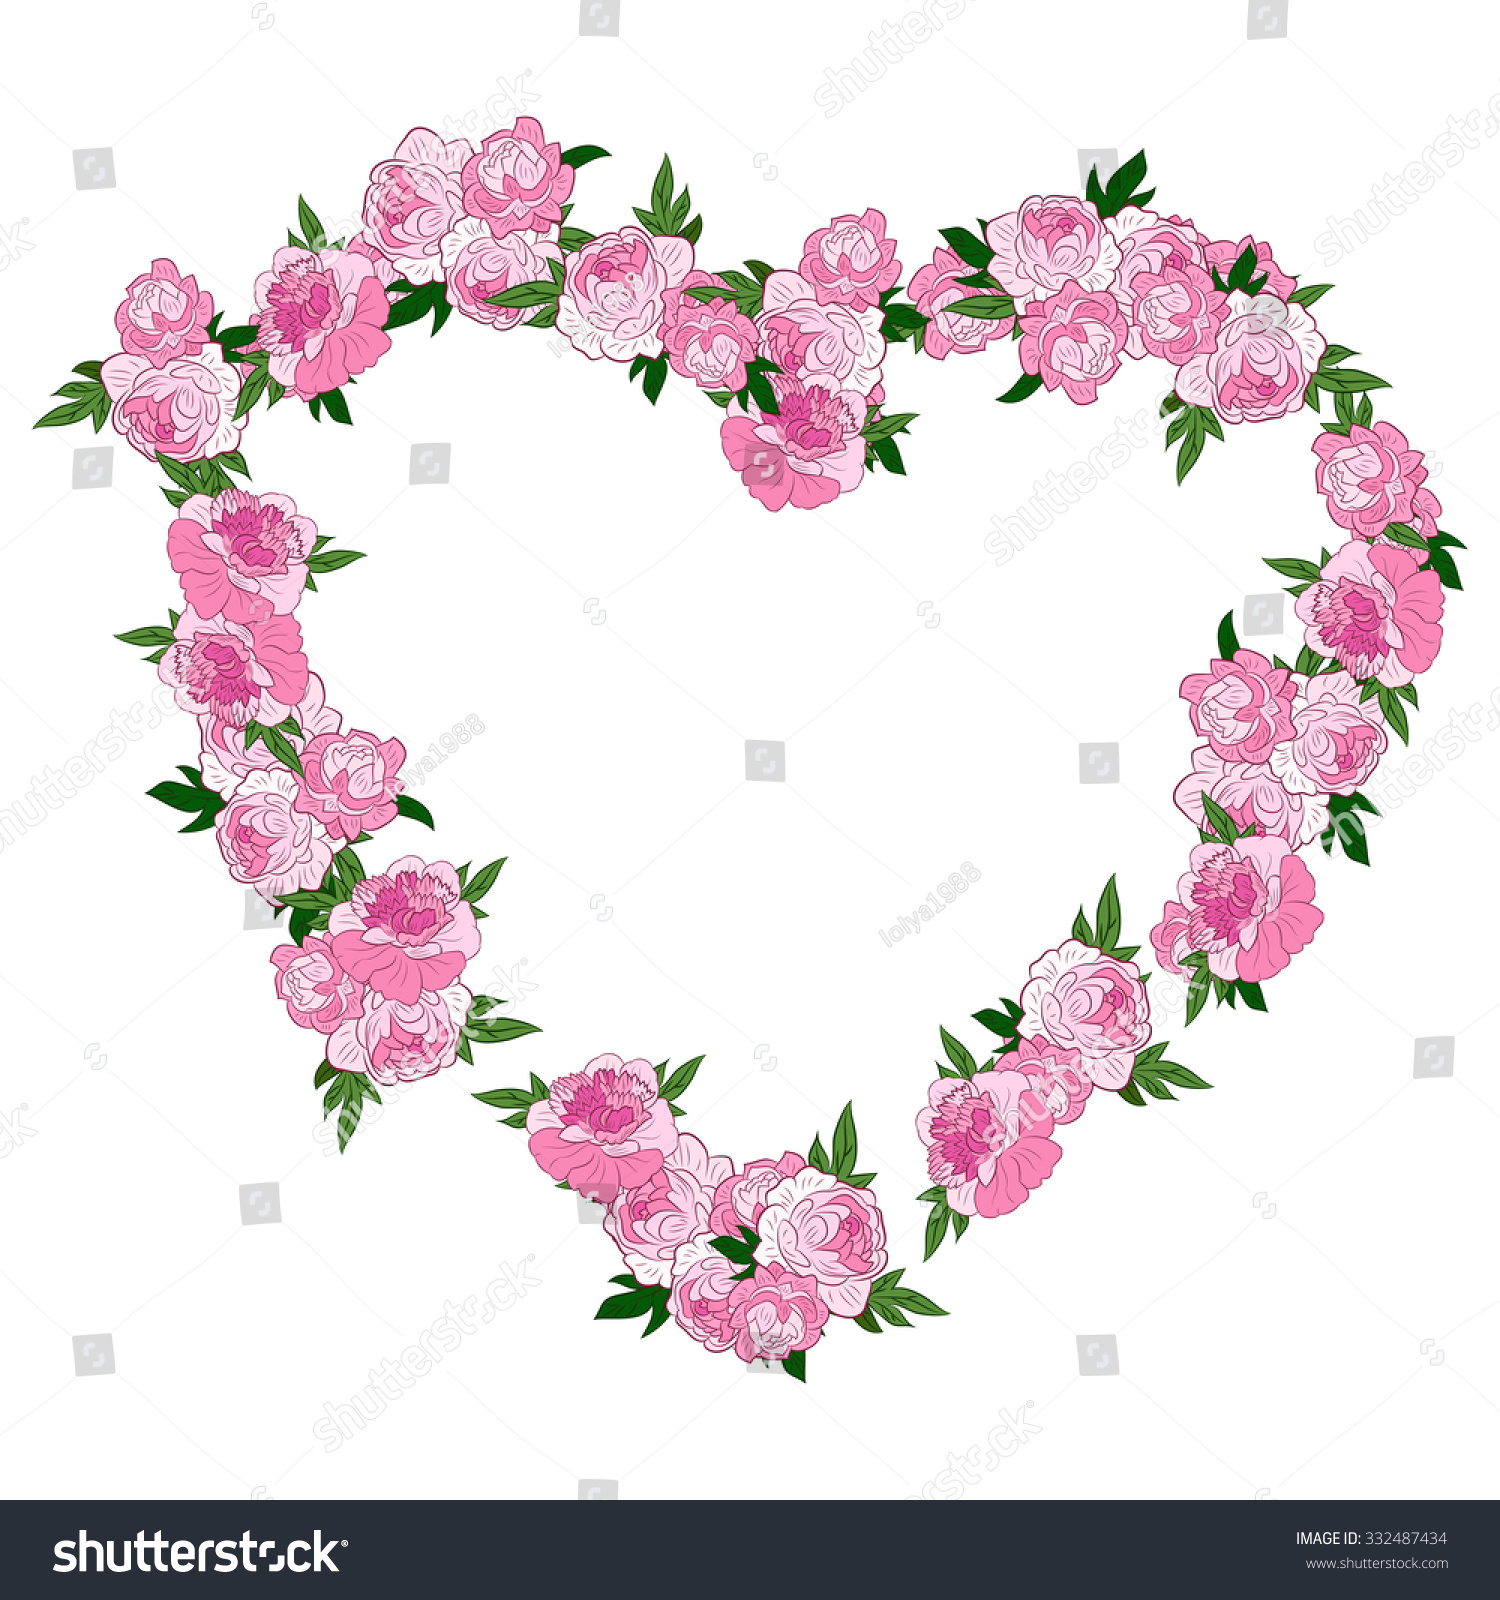 Royalty free pink floral heart shape wreath made 332487434 stock pink floral heart shape wreath made with peonies frame or border of flowers isolated on mightylinksfo